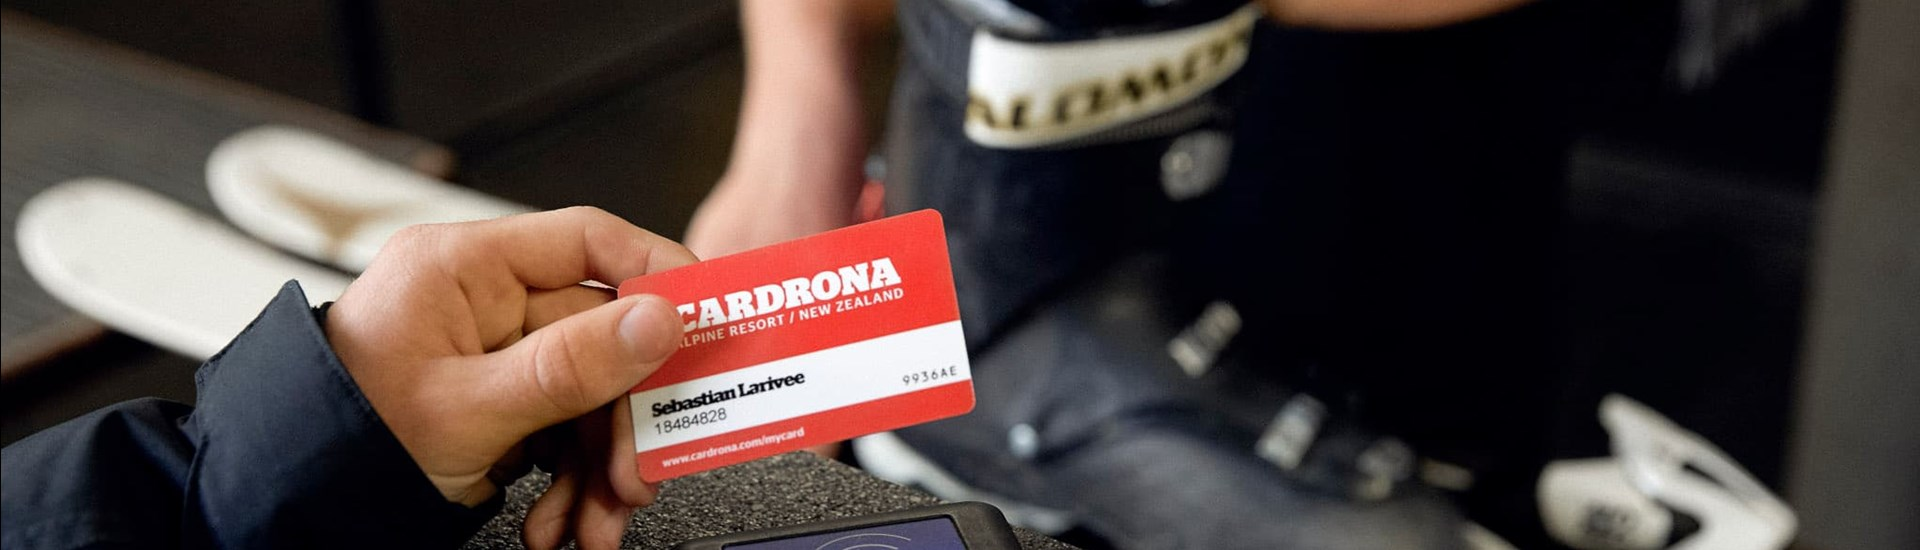 Cardrona ski snowboard rental lessons New Zealand